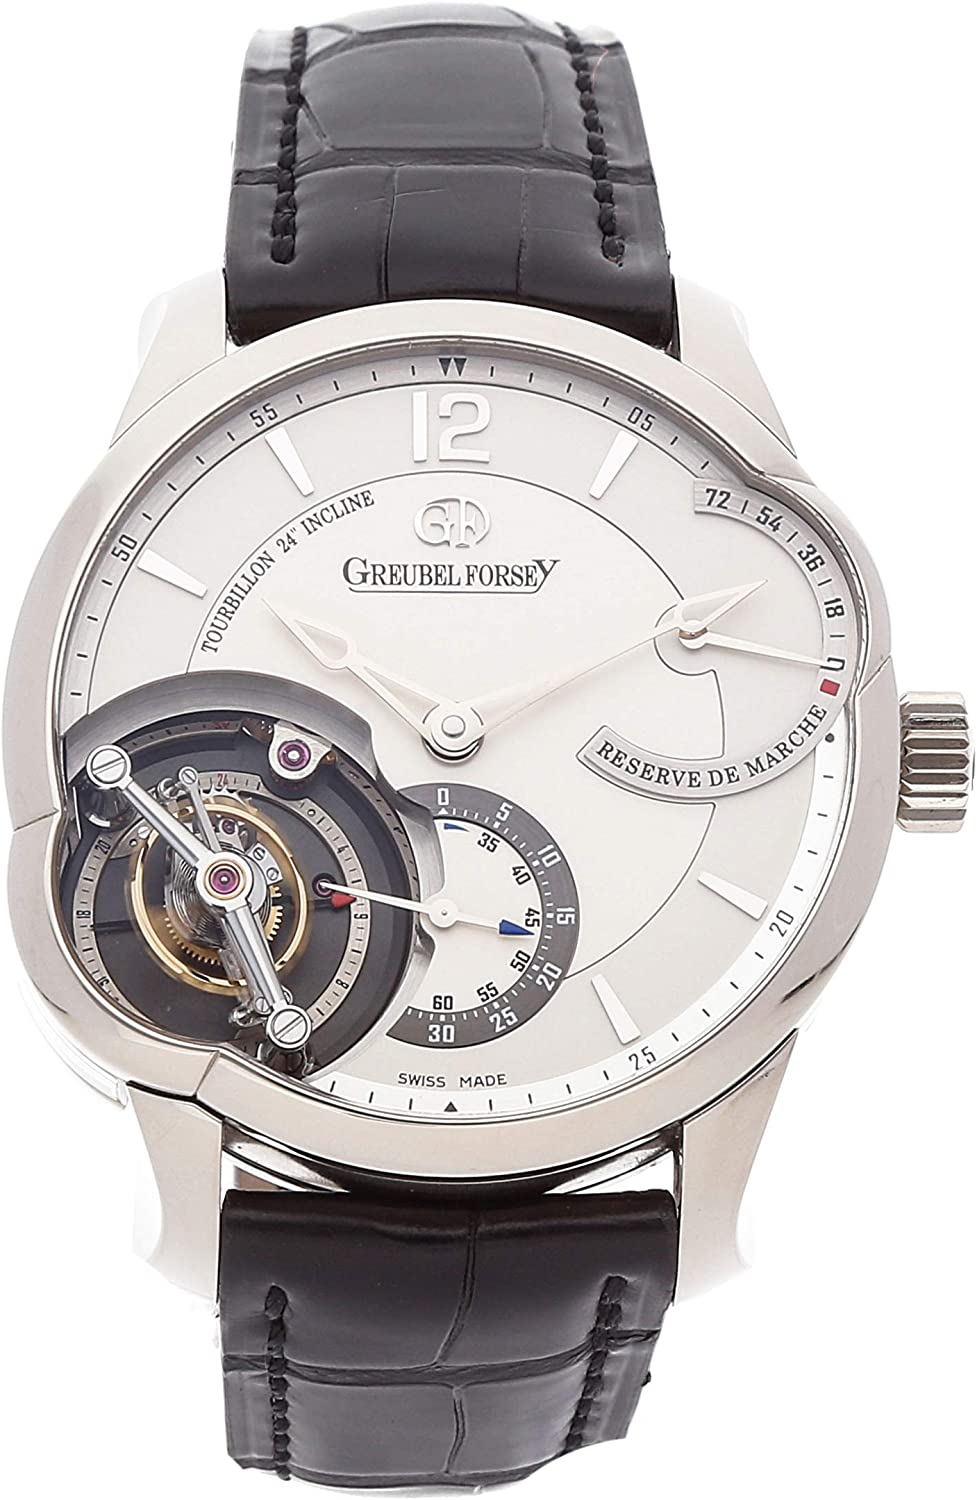 Greubel Forsey Tourbillon Mechanical (Hand-Winding) Silver Dial Mens Watch GF01 (Certified Pre-Owned)